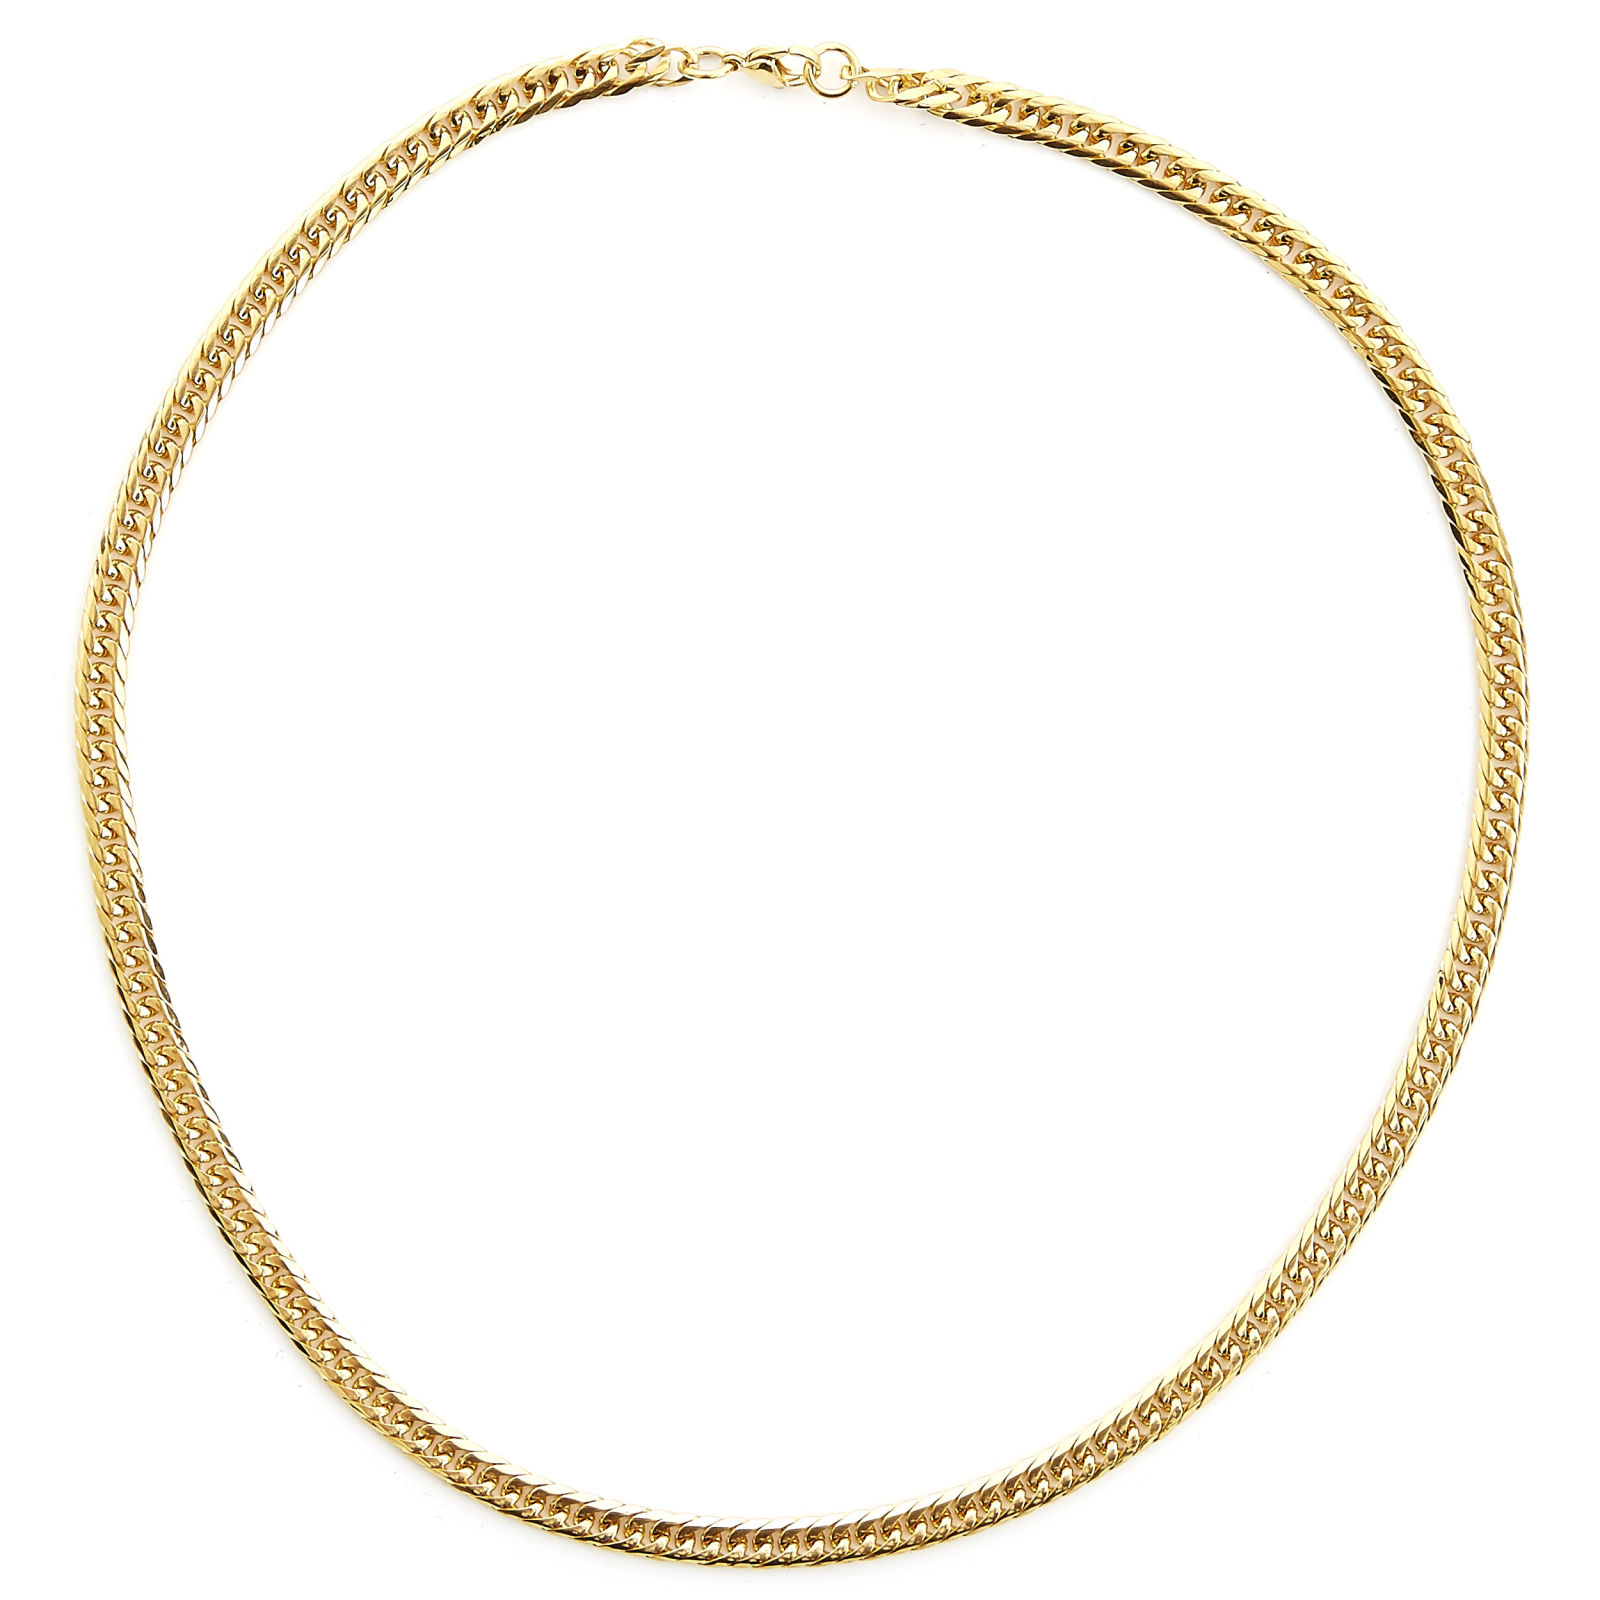 10mm Gold-Toned Chain Necklace Trendhim